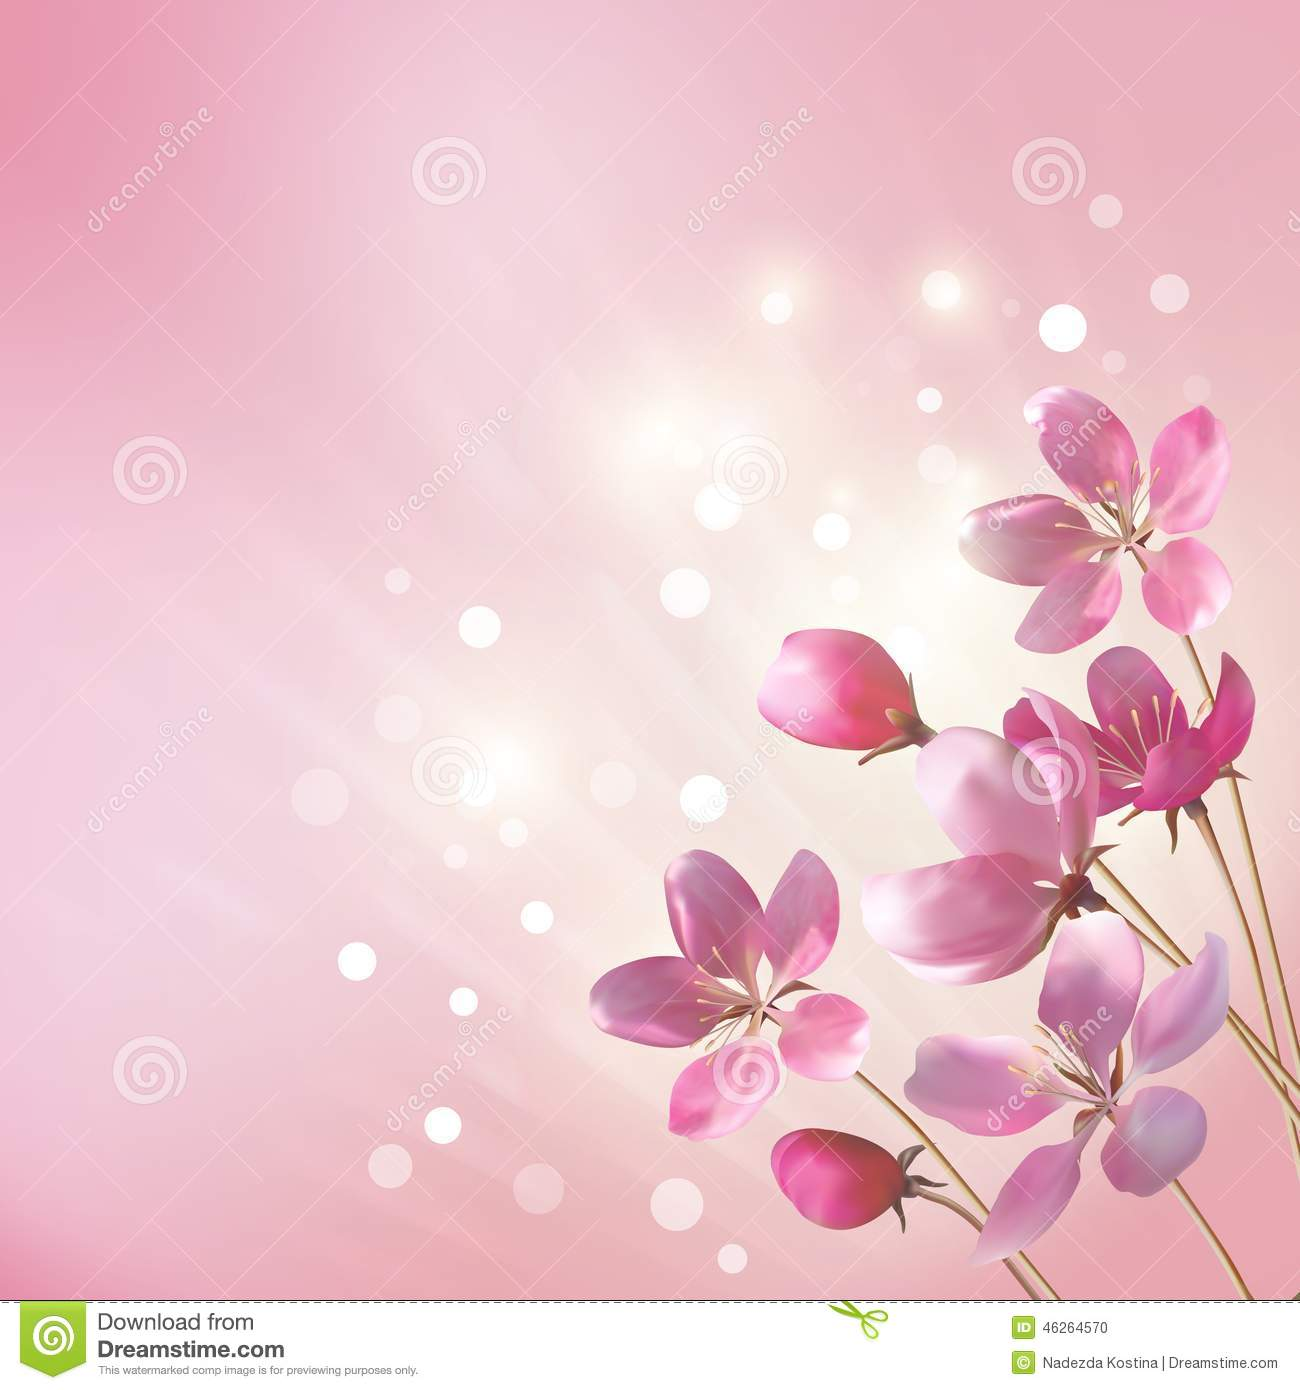 Shining Pink Flowers Background Stock Vector